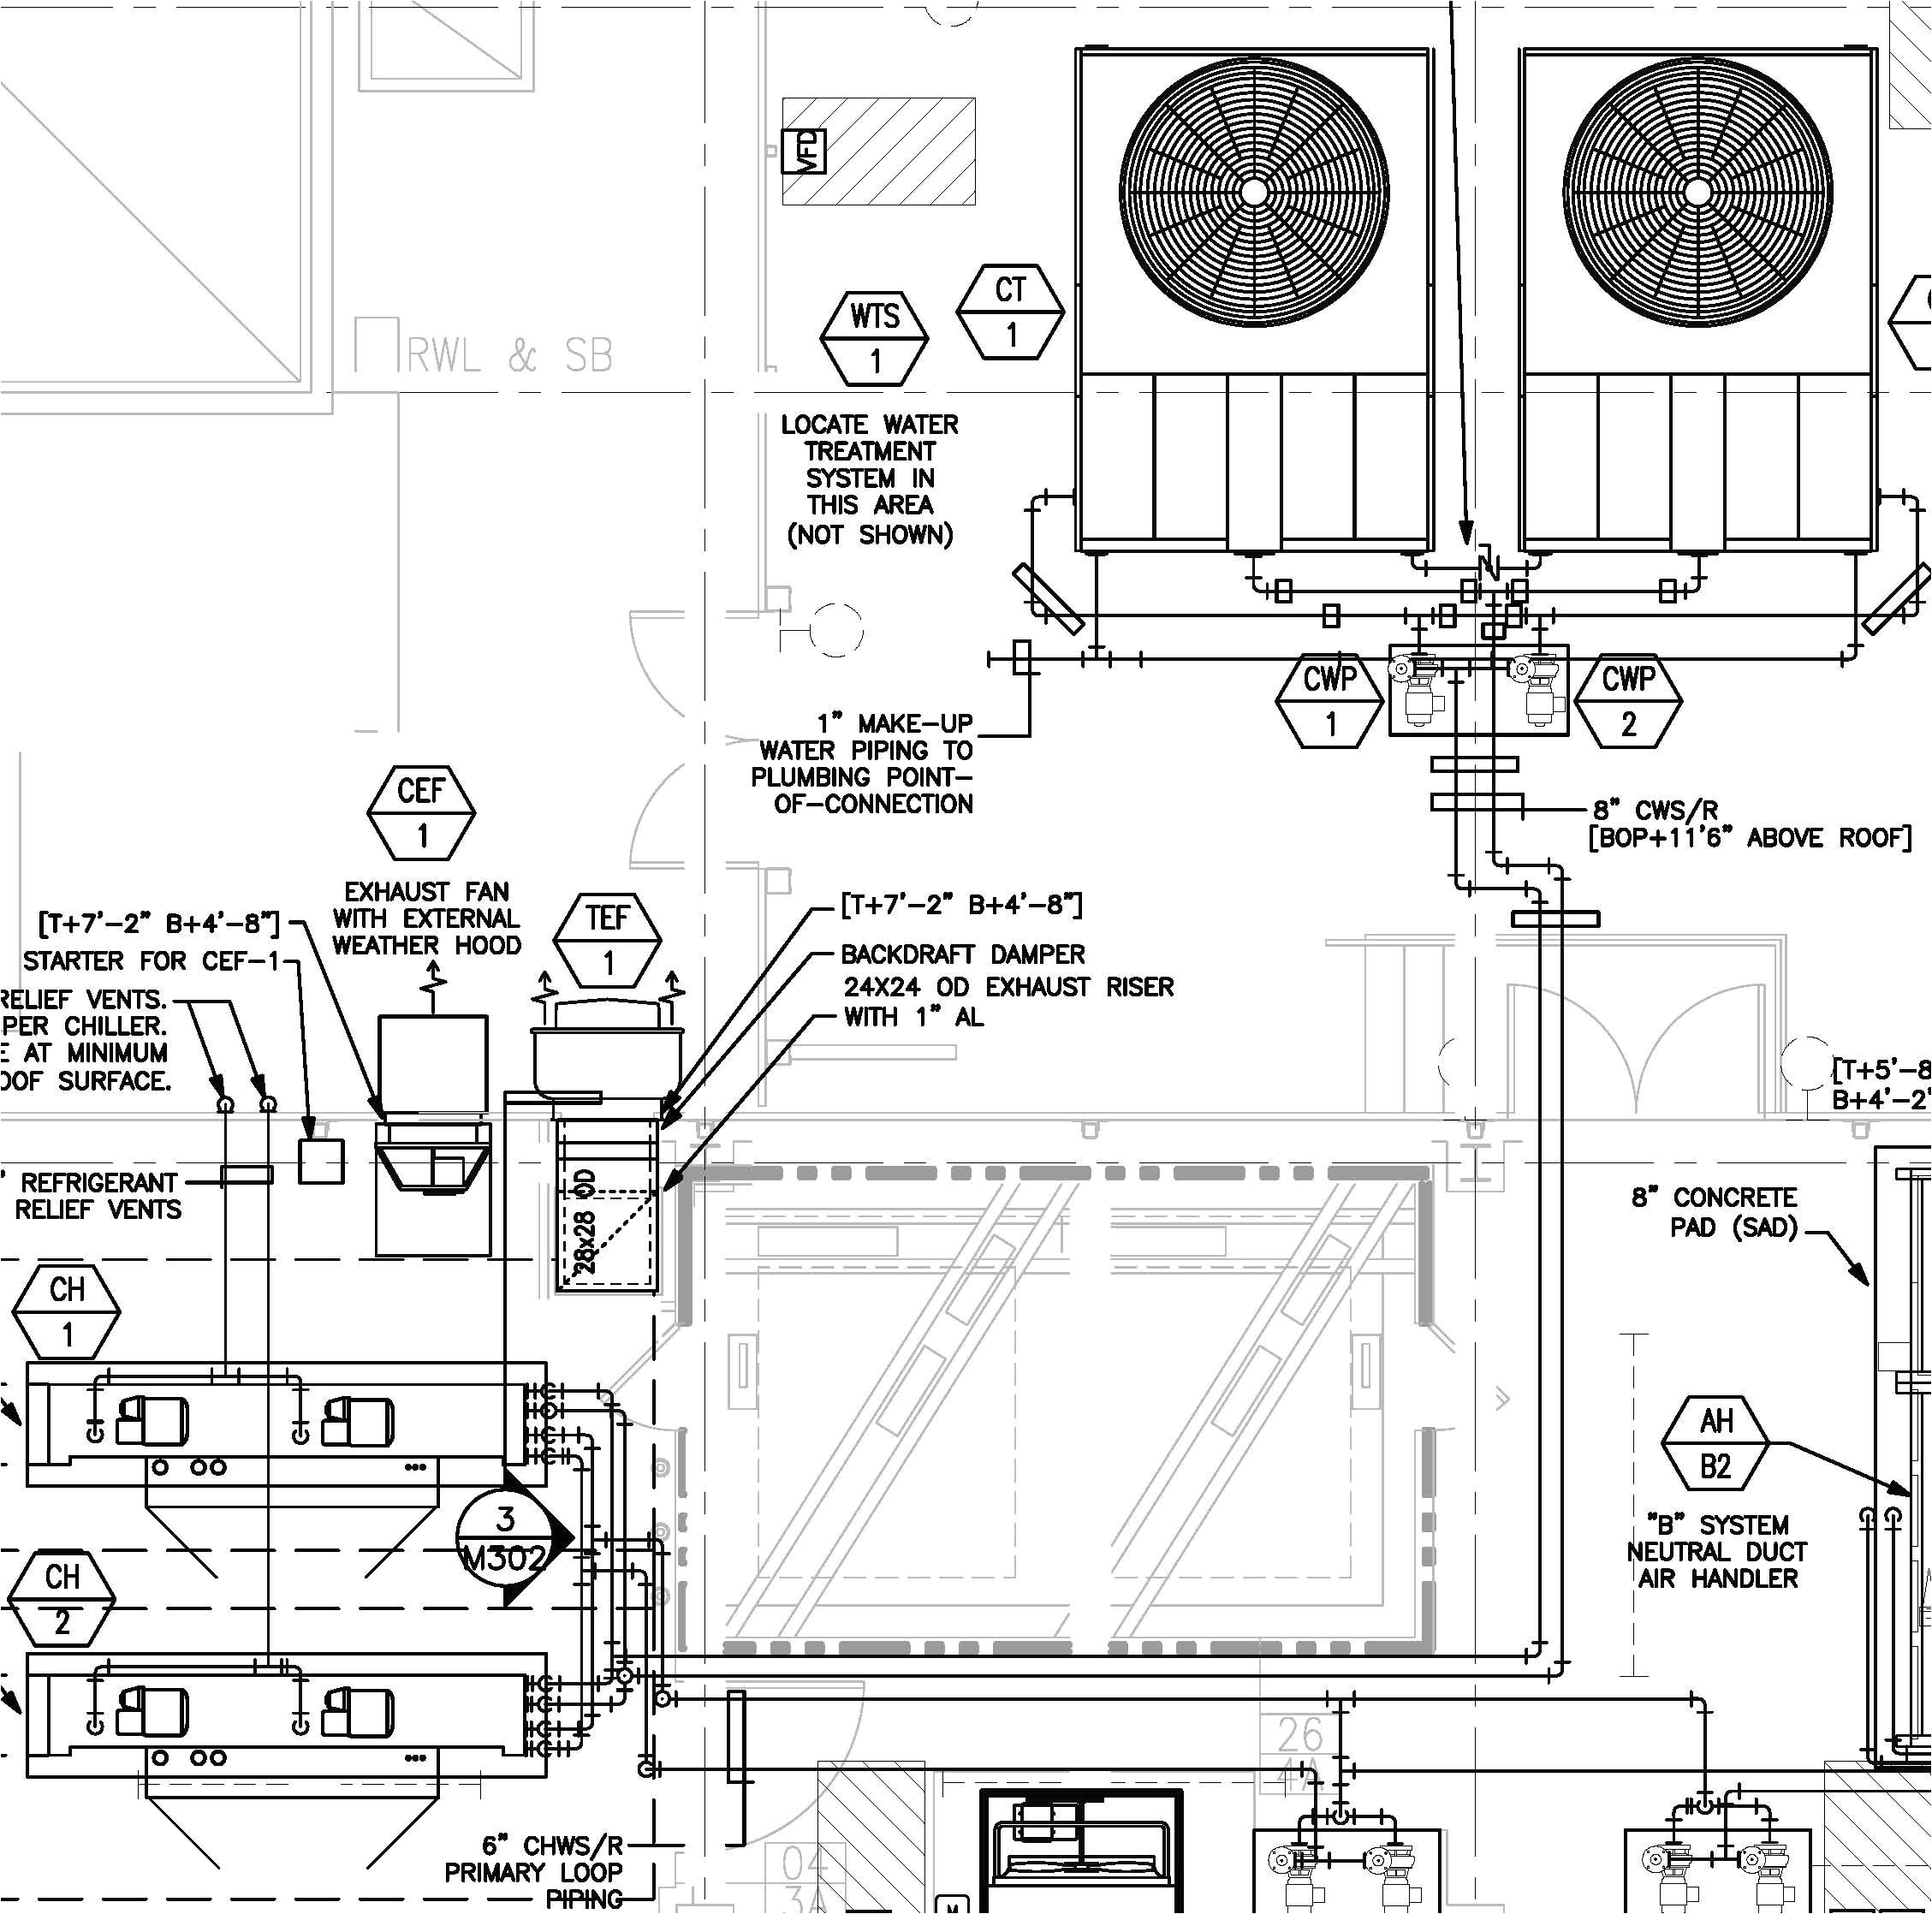 chiller starter wiring diagram wiring diagram for you chiller piping connection diagram chiller connection diagram